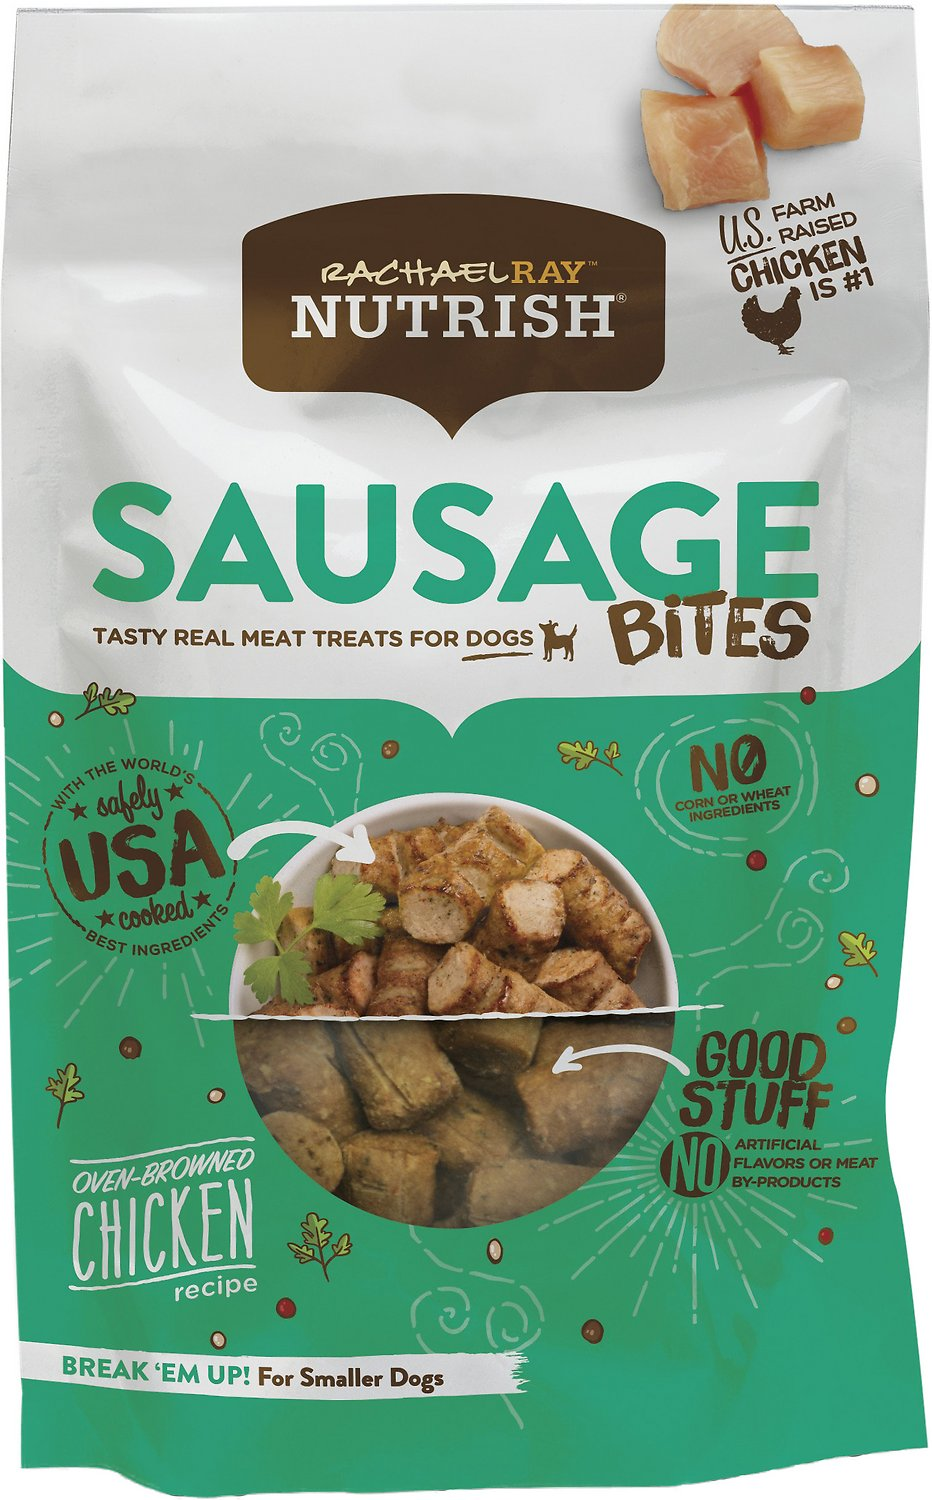 Rachael Ray™ Nutrish® Tasty Real Meat Treats for Dogs Sausage Bites